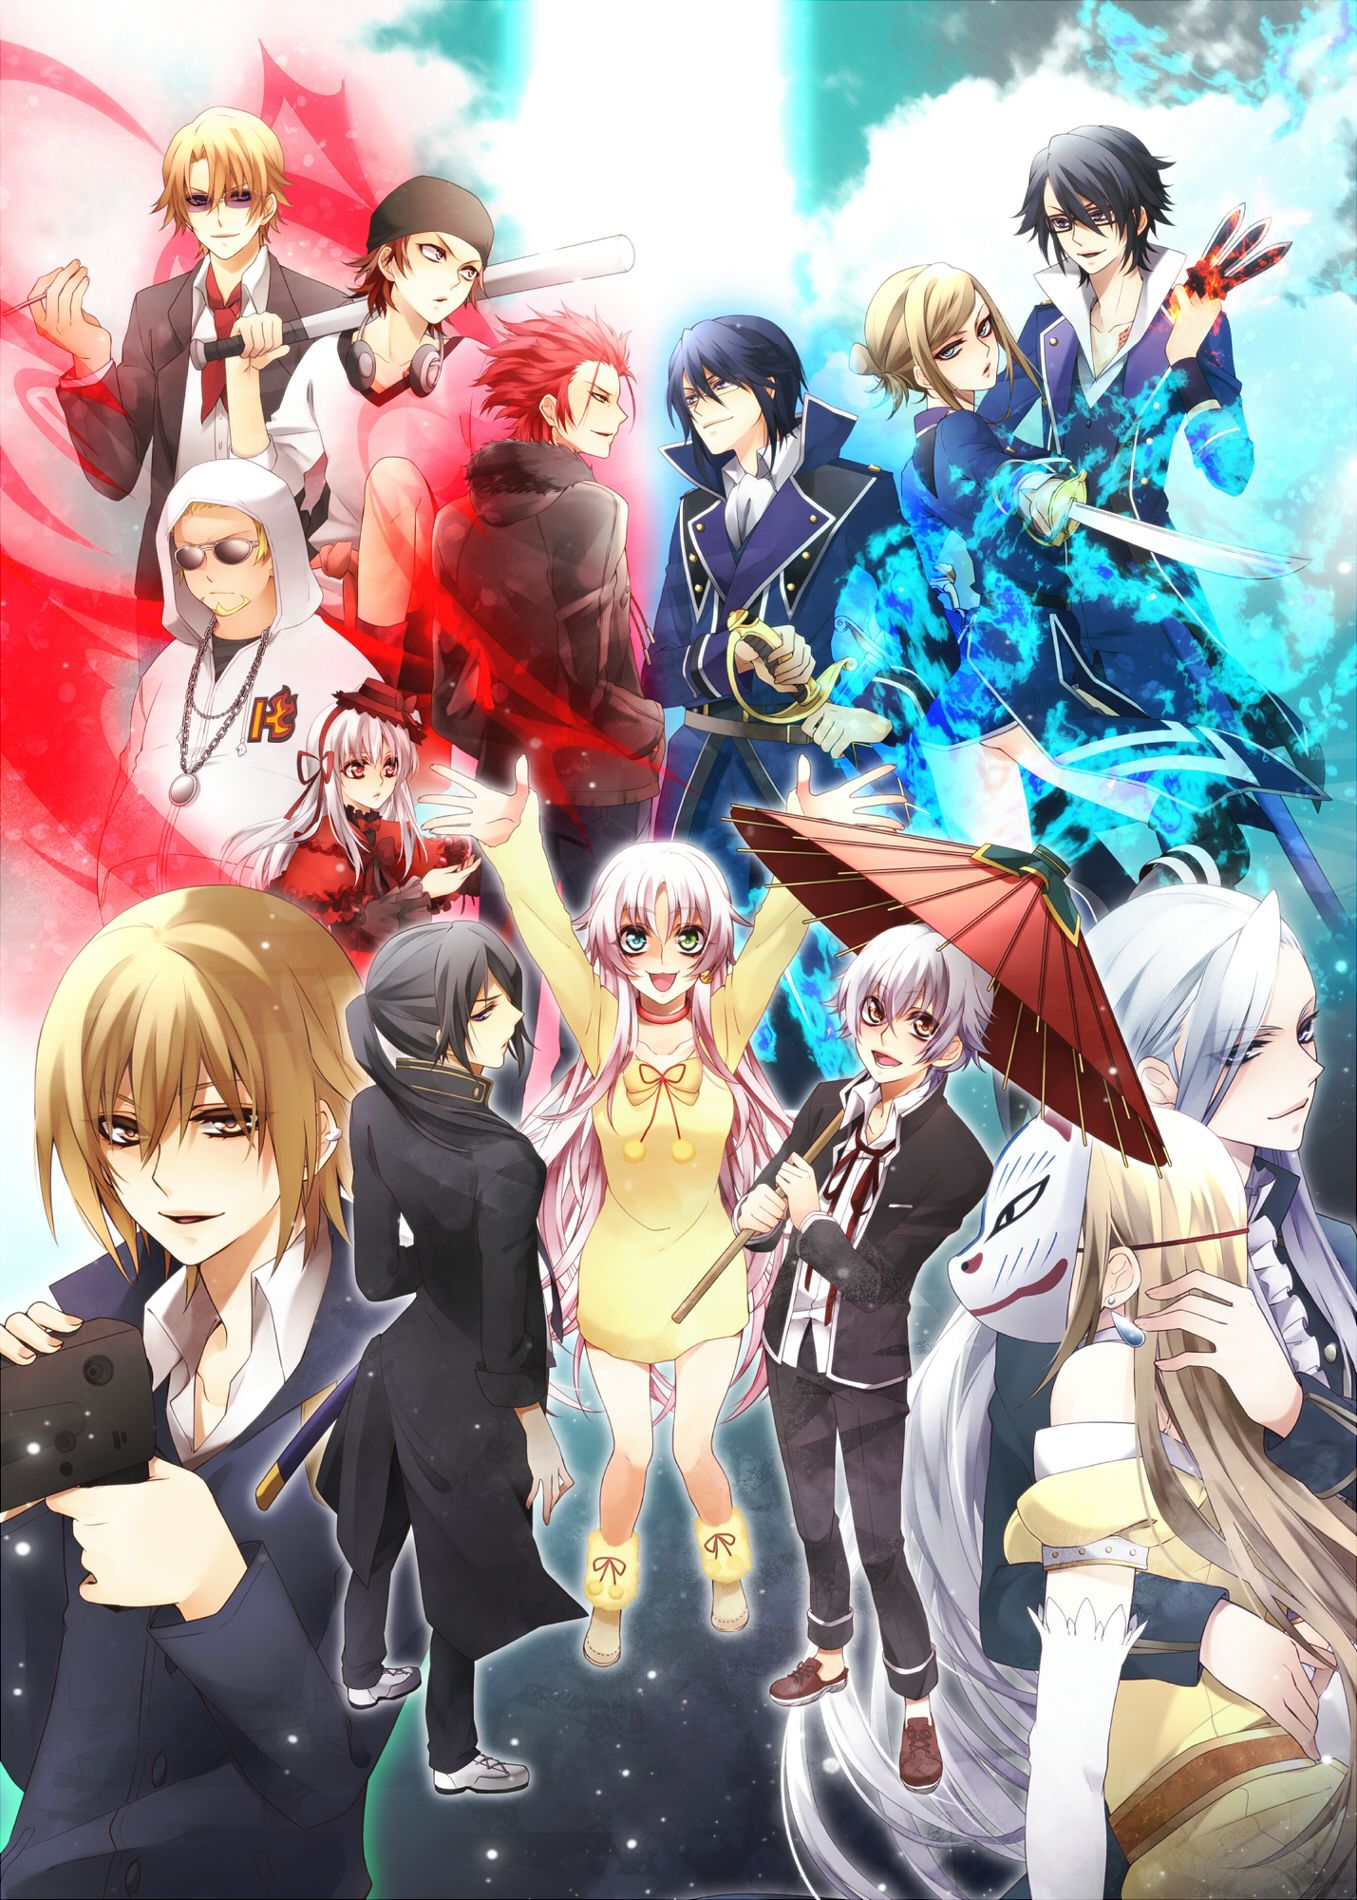 K Project/1405207 Zerochan K project, Projects, Anime